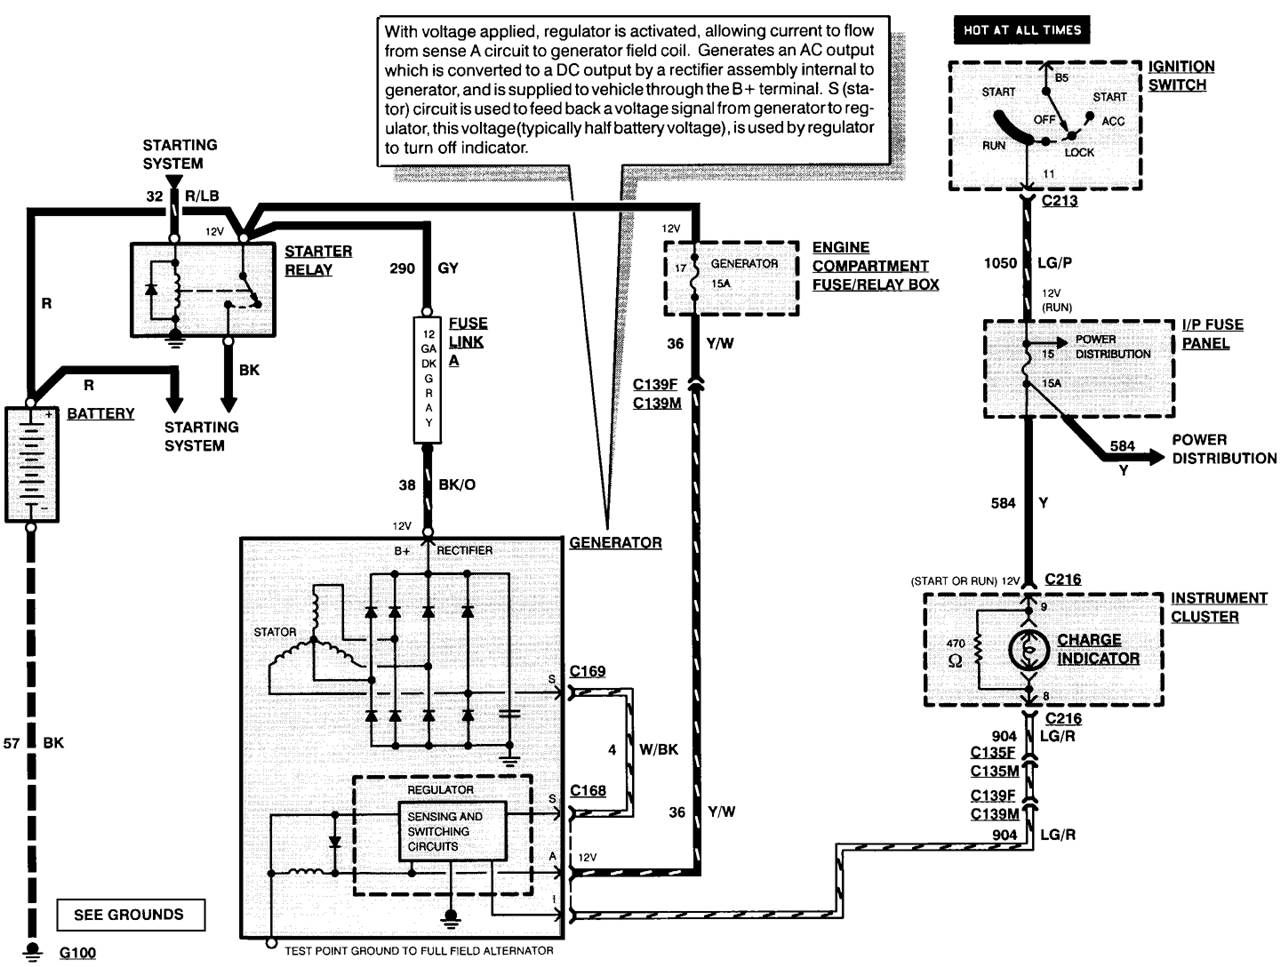 Ford alternator wiring diagram internal regulator 1994 f700 wiring diagram on 1994 download wirning diagrams 1992 ford f700 wiring diagram at crackthecode.co